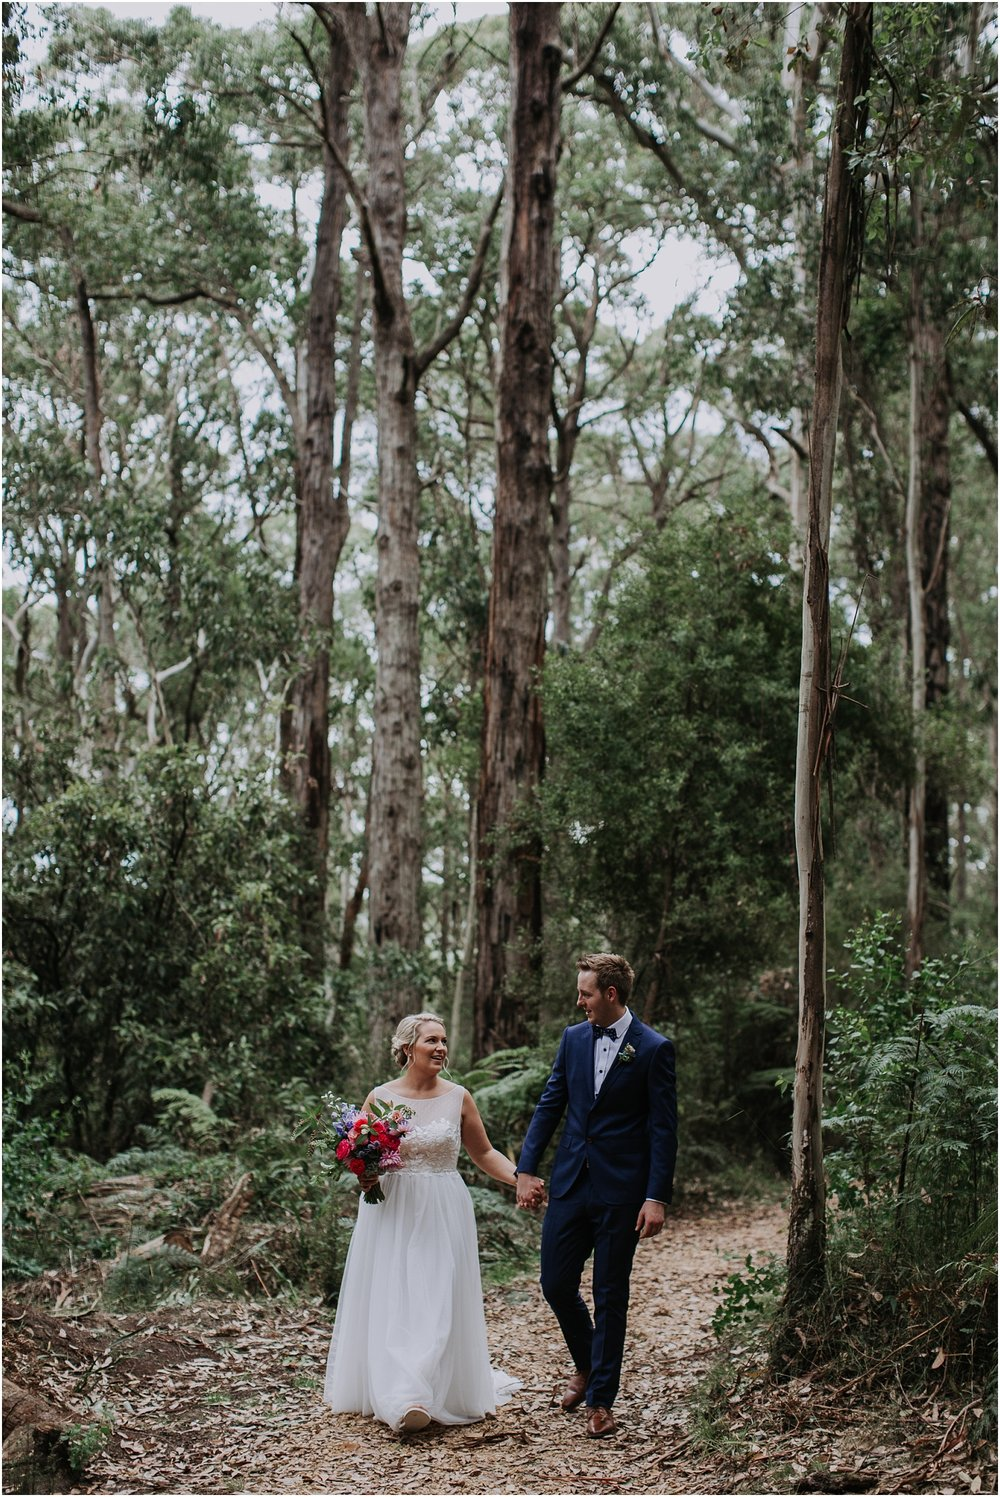 Ainslee and Warwick's elopement at Erskin Falls and the Lorne Beach Pavilion on the Great Ocean Road._0032.jpg